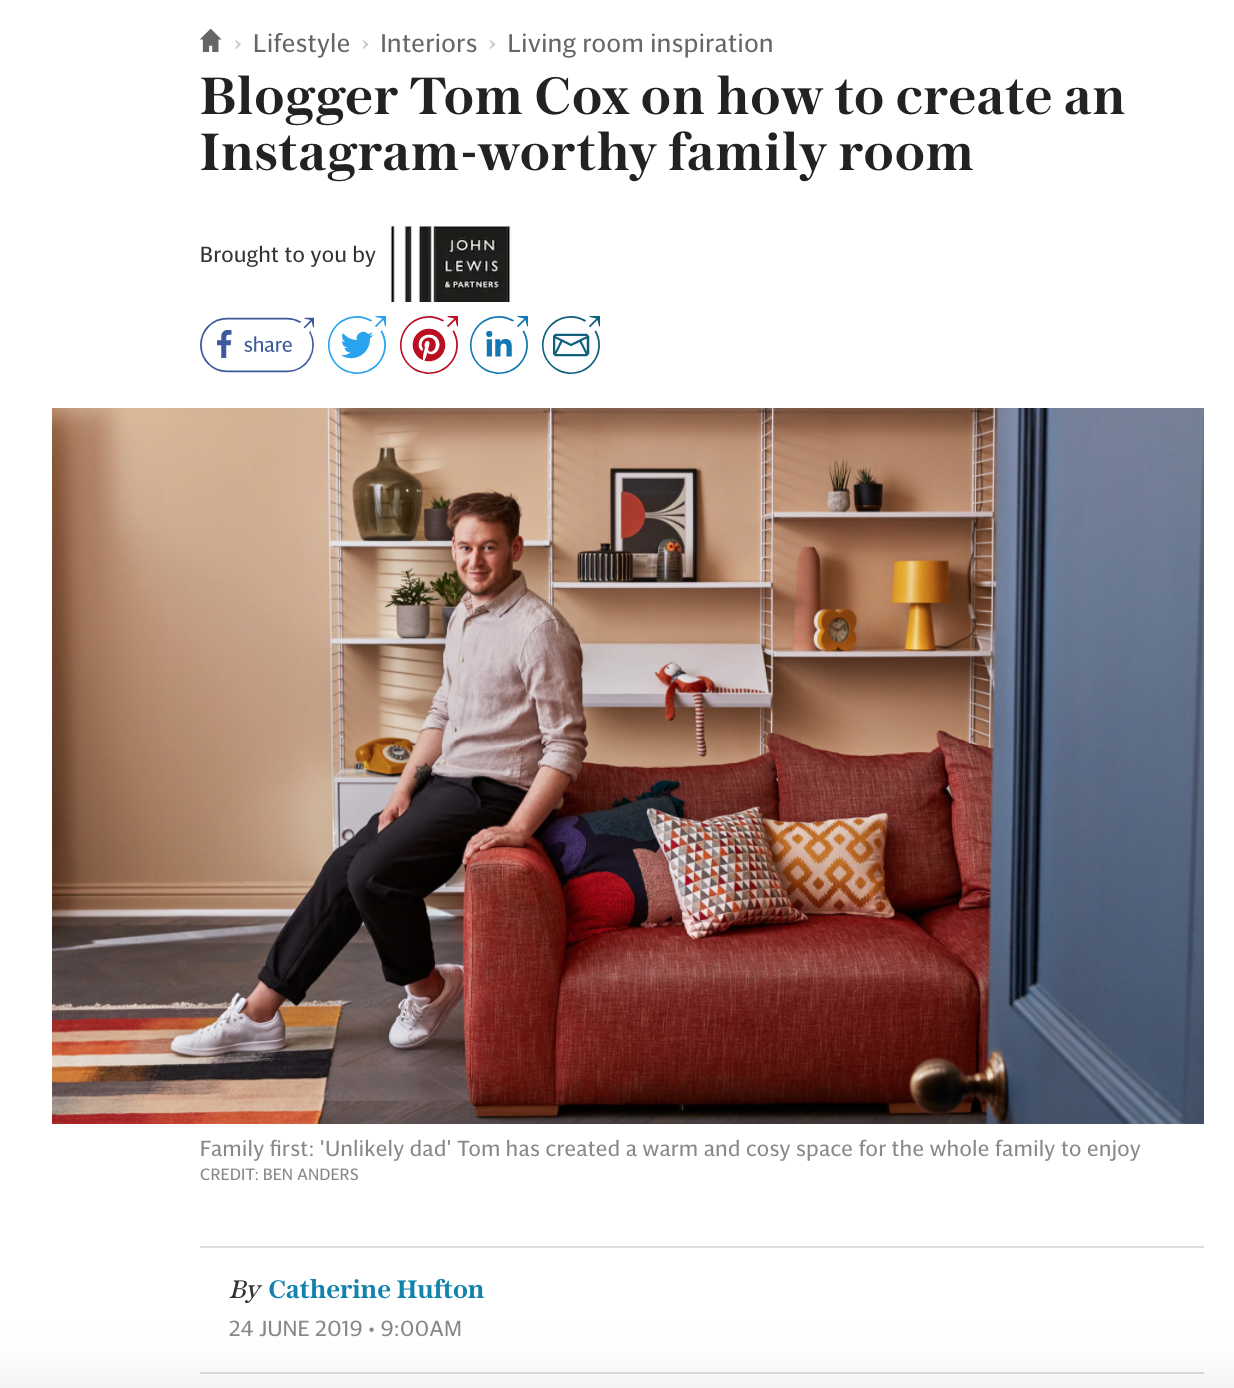 Blogger Tom Cox on how to create an Instagram-worthy family room